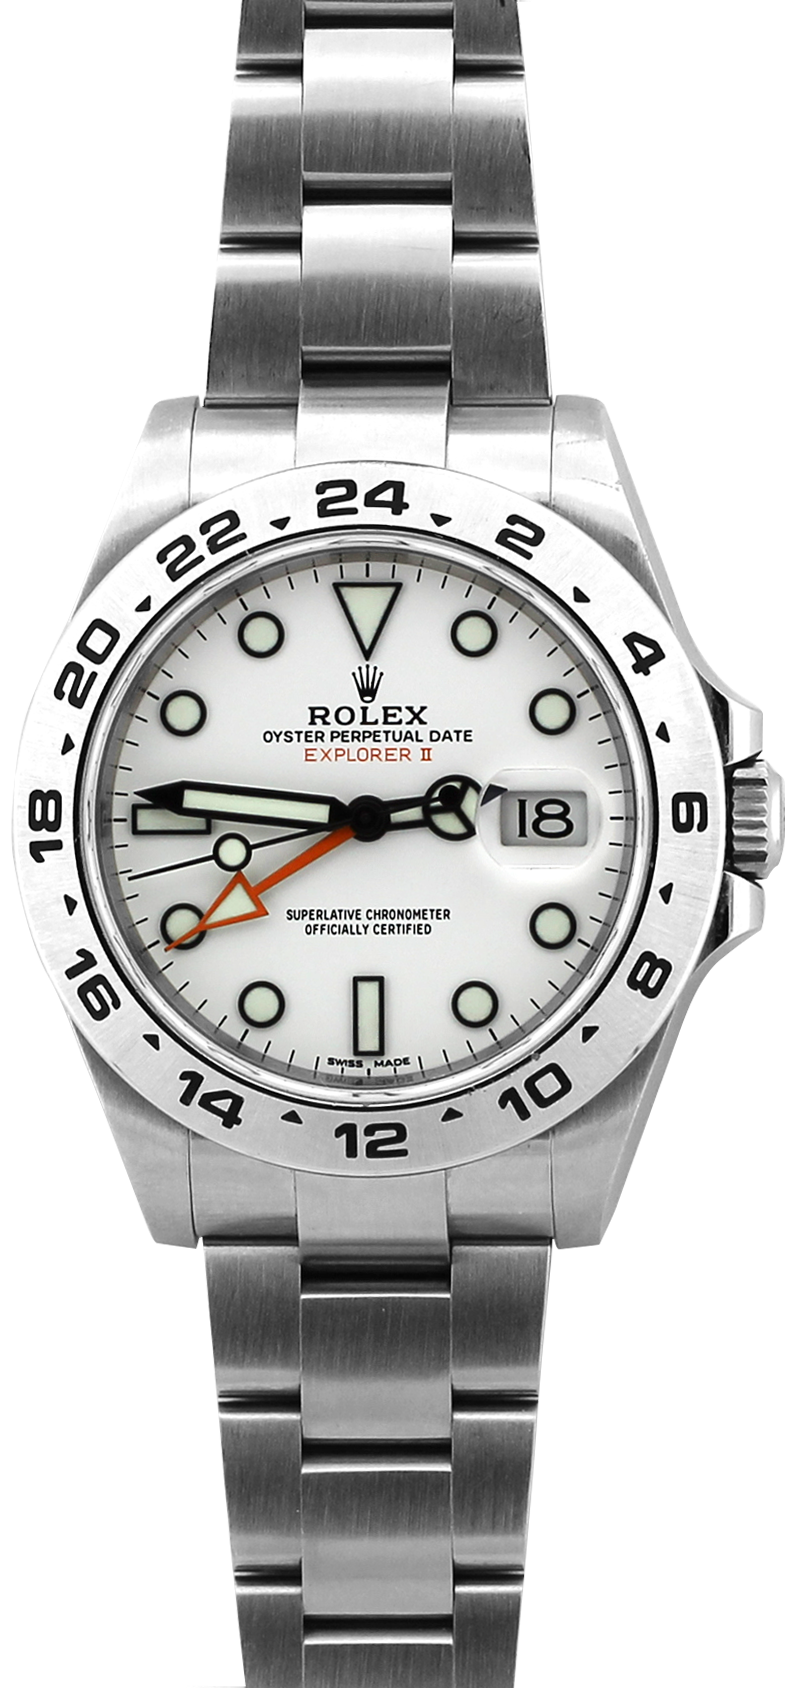 Rolex Steel Explorer II 216570 White Dial with Box & Booklets